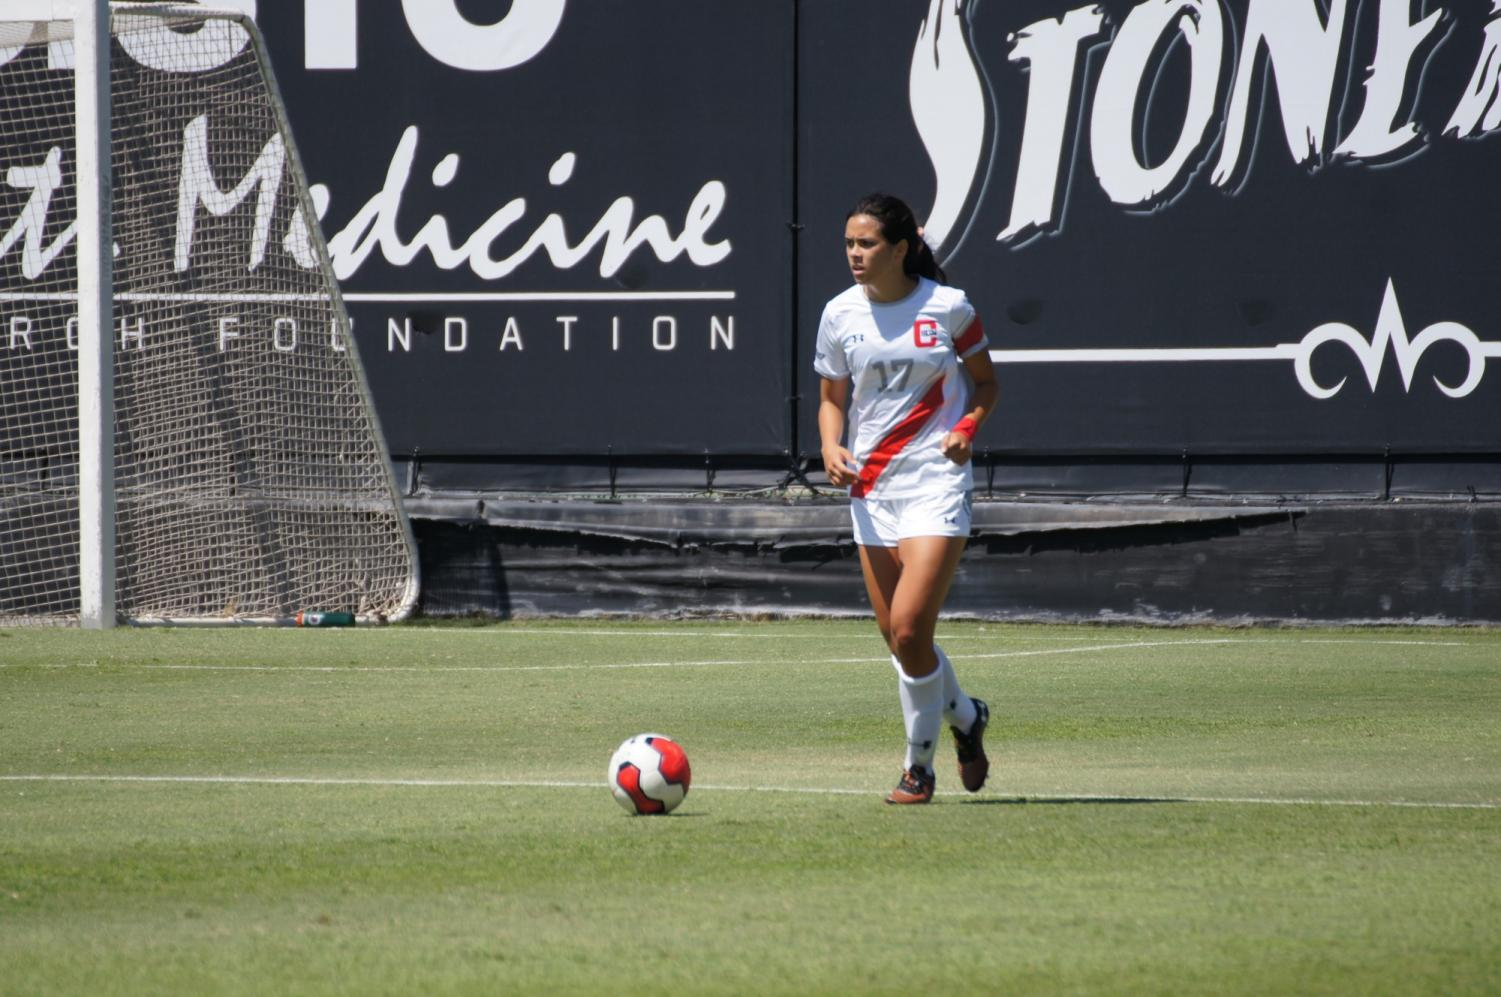 Senior defender Amanda Martin bringing the ball up against Eastern Washington on Sept. 8. Martin scored the only goal of the game against San Diego on Sunday. Photo credit: Bryanna Winner